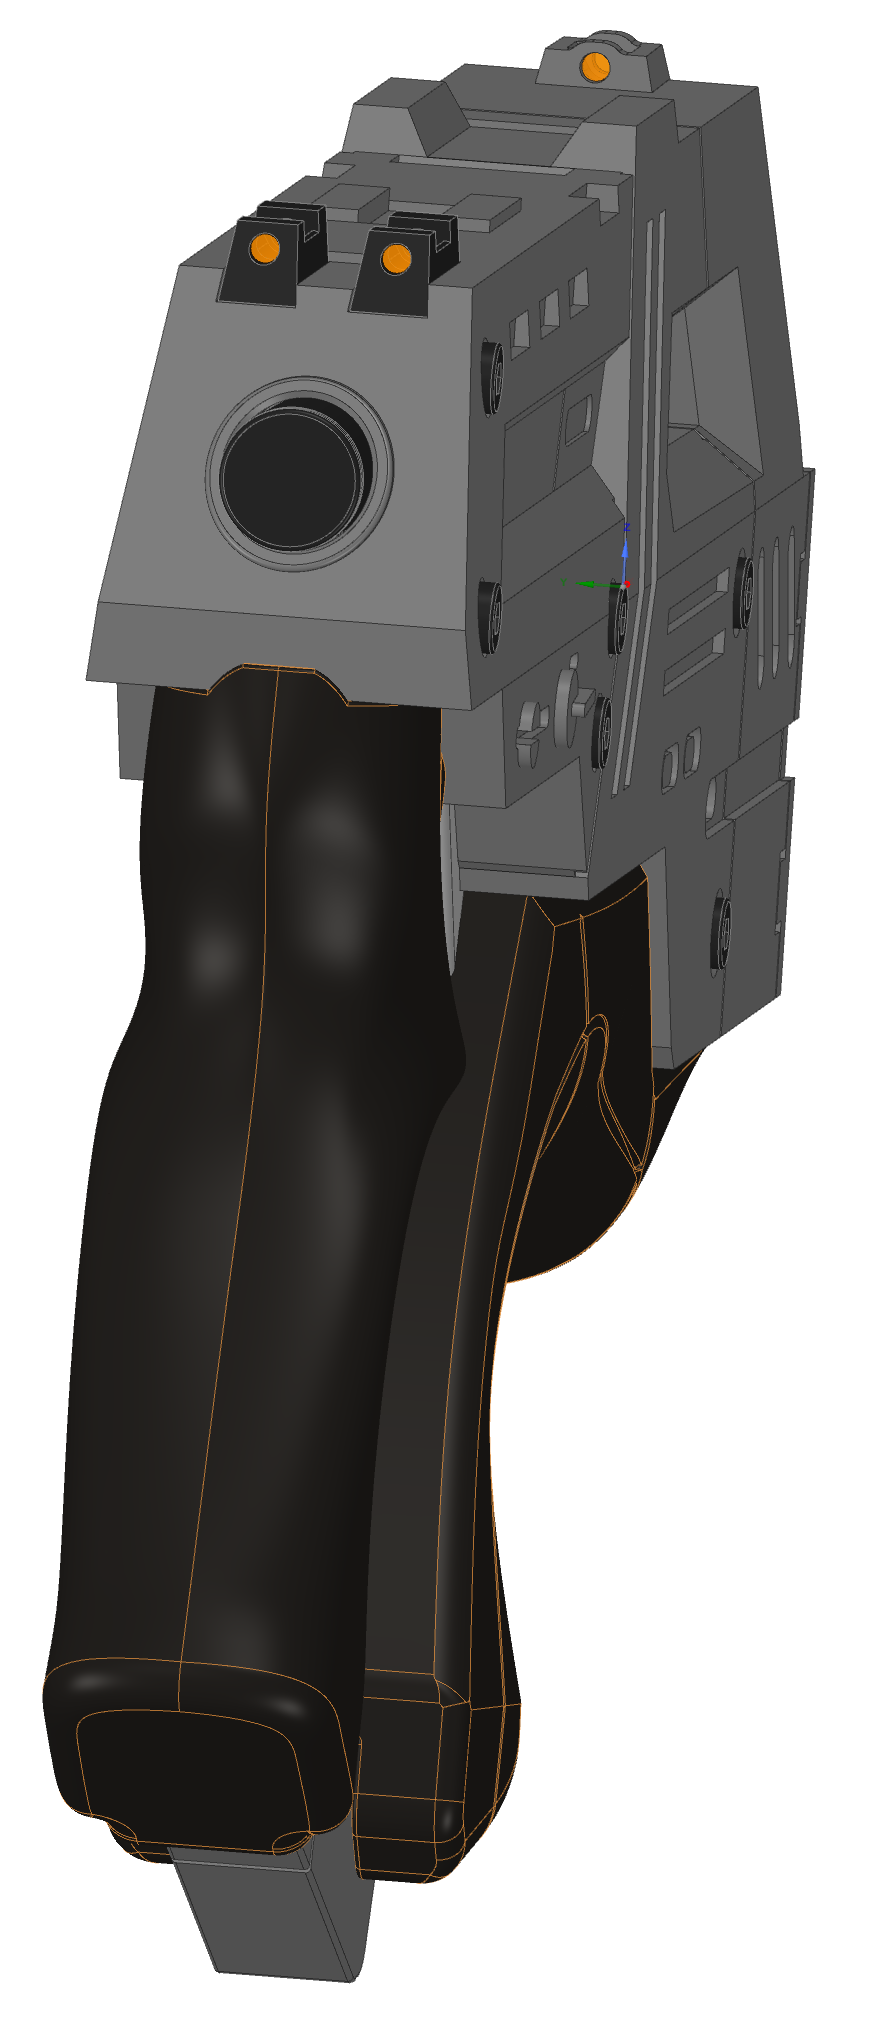 Carnifex wip iron sights rear view 2.png